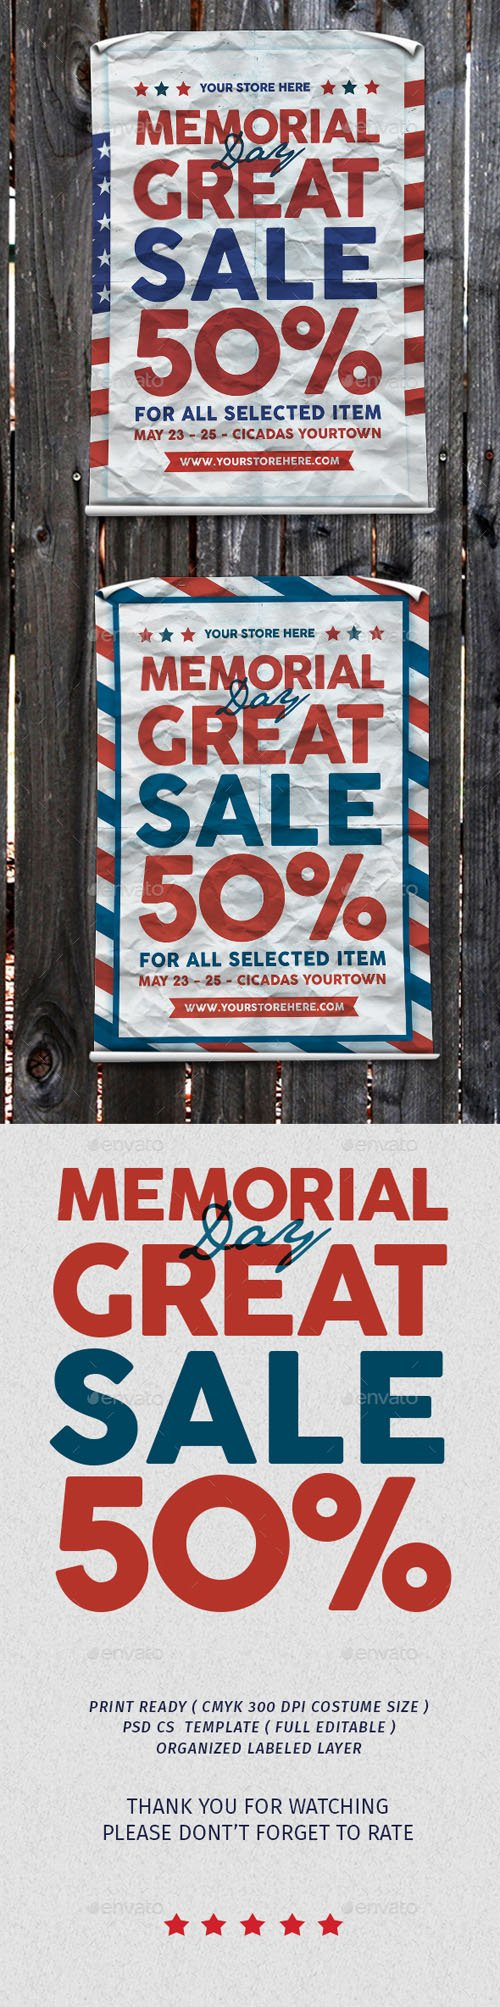 Memorial Great sale 19982259